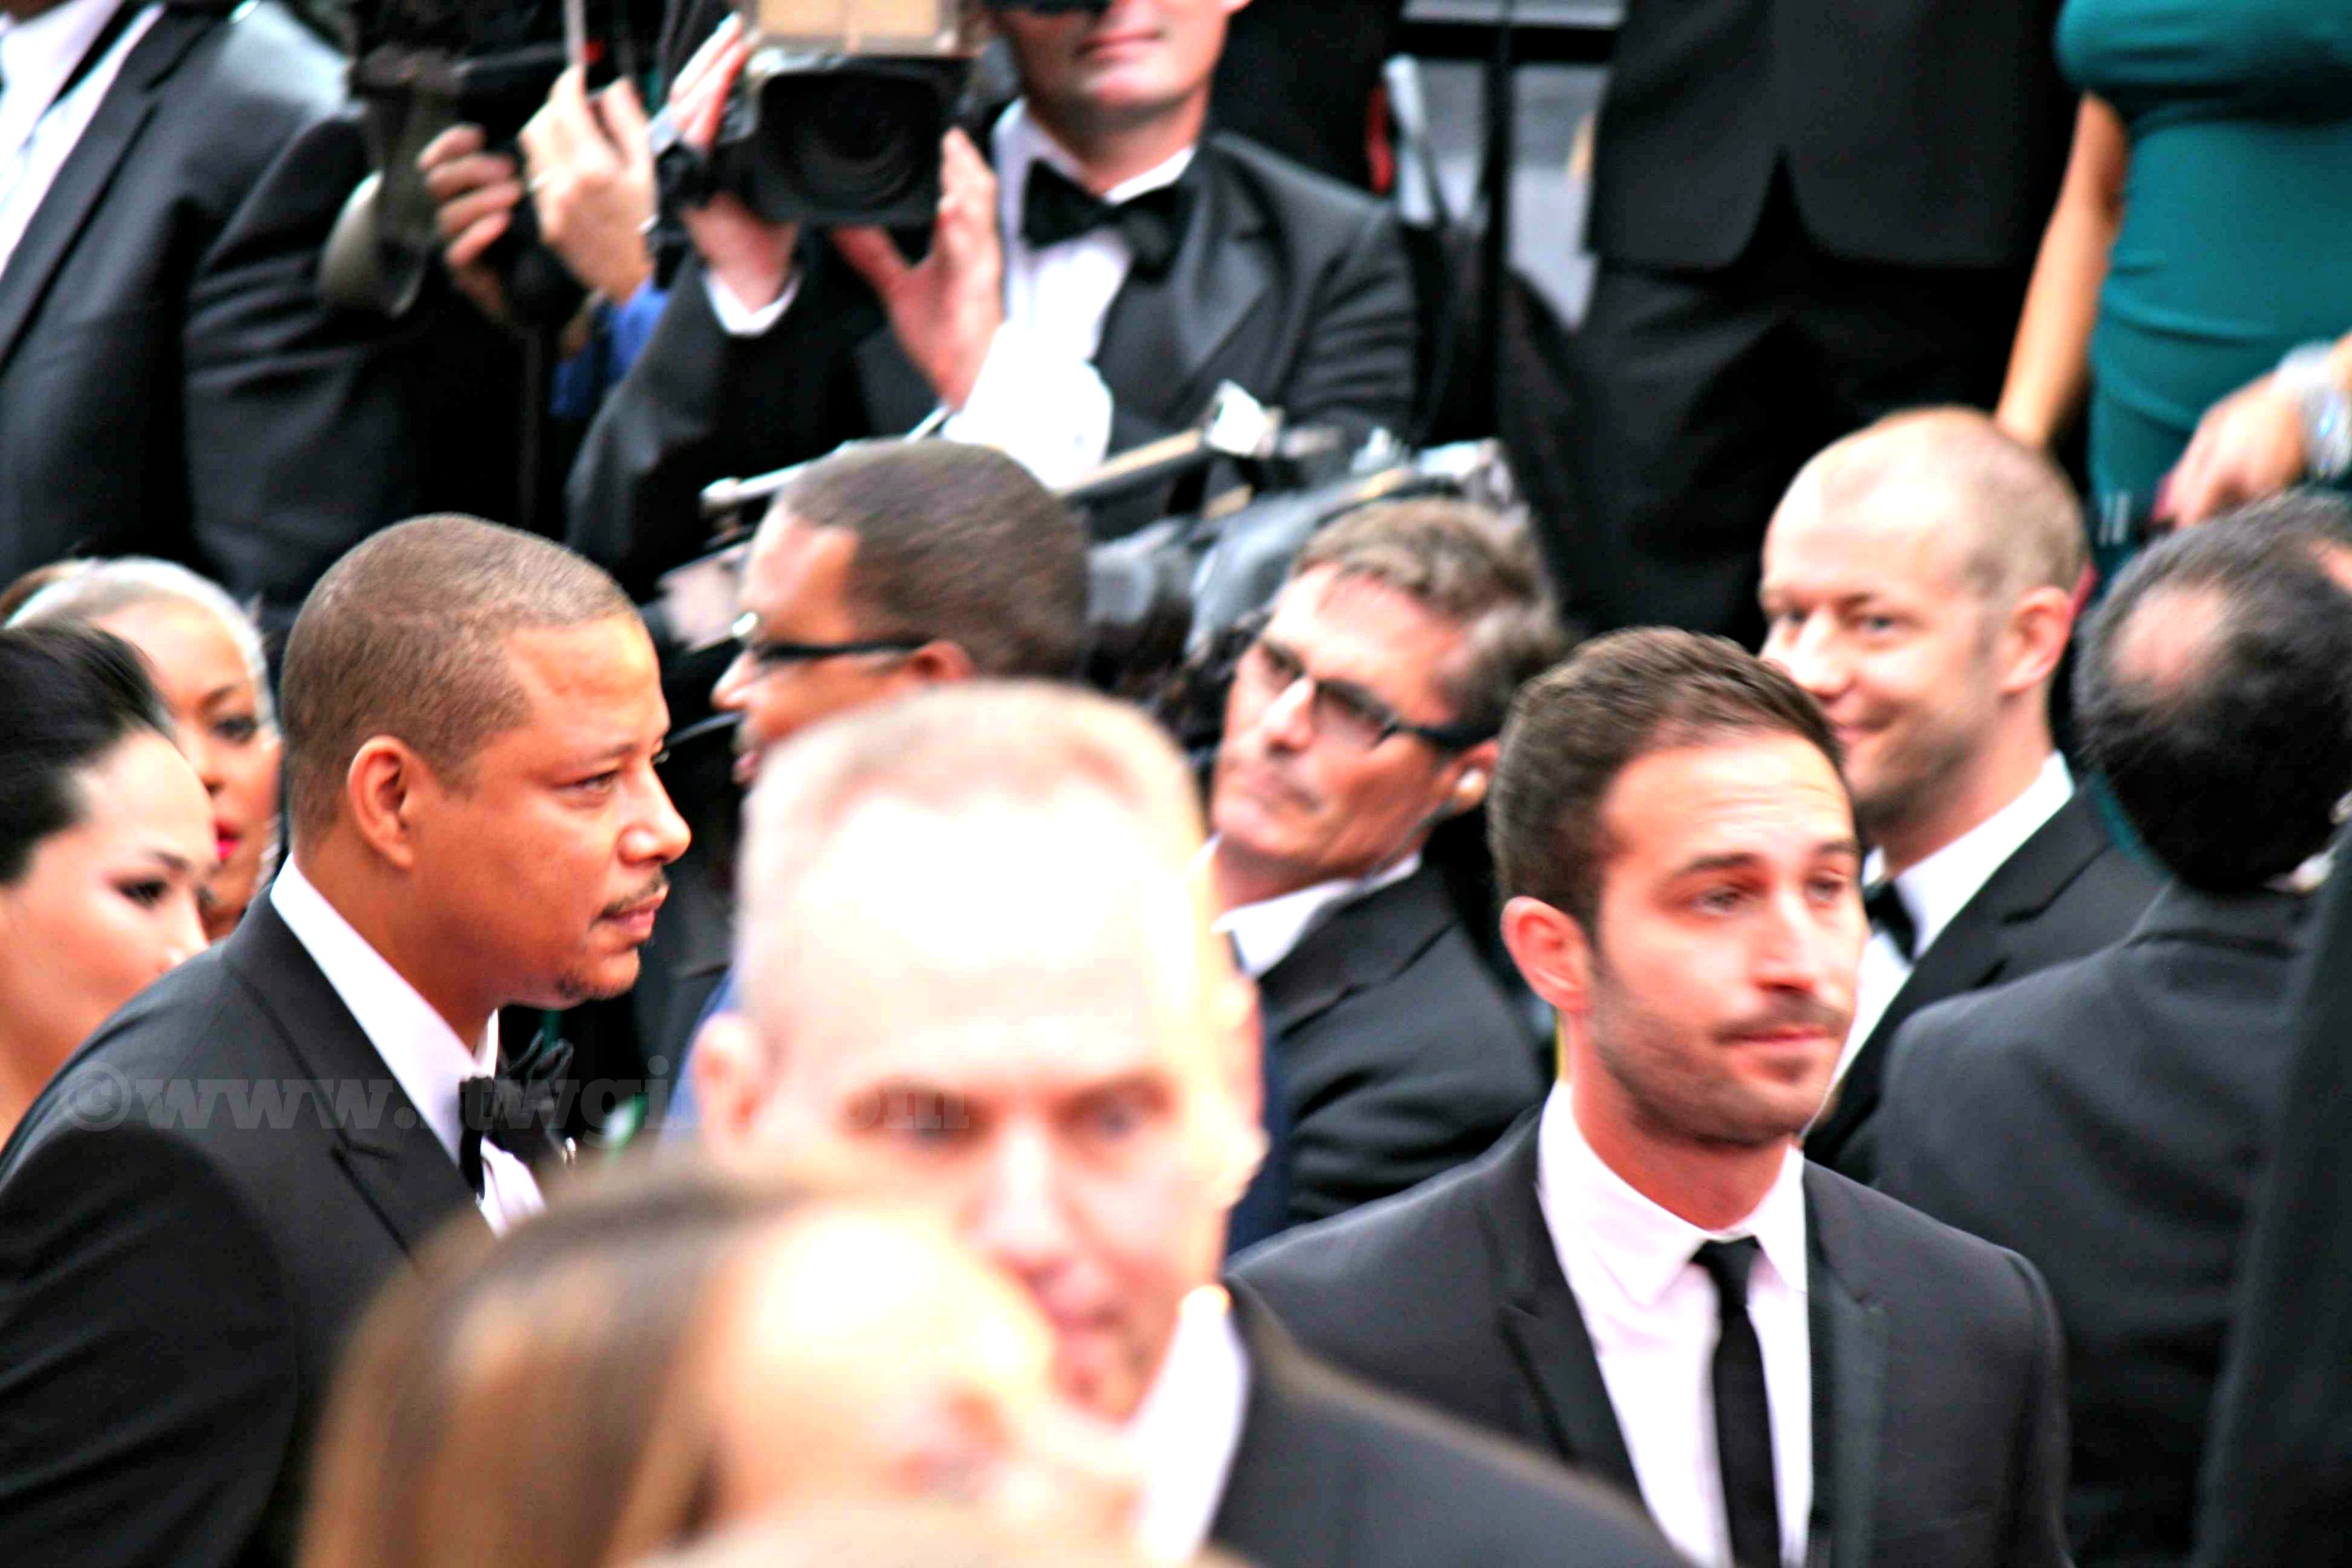 Terence Howard Oscars Red Carpet 2015